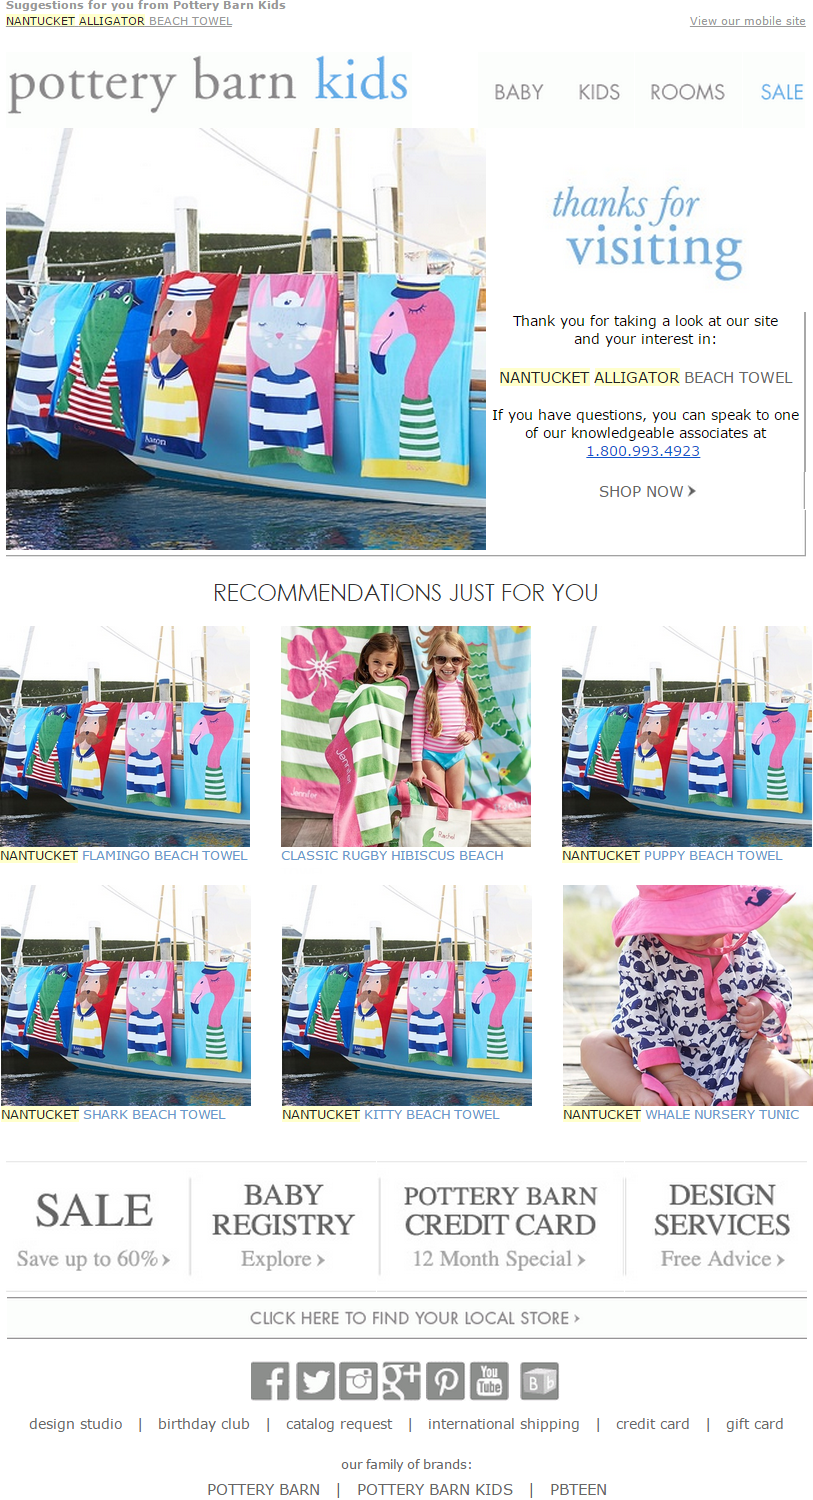 Pottery Barn Kids Abandon Browse. Be careful if you have